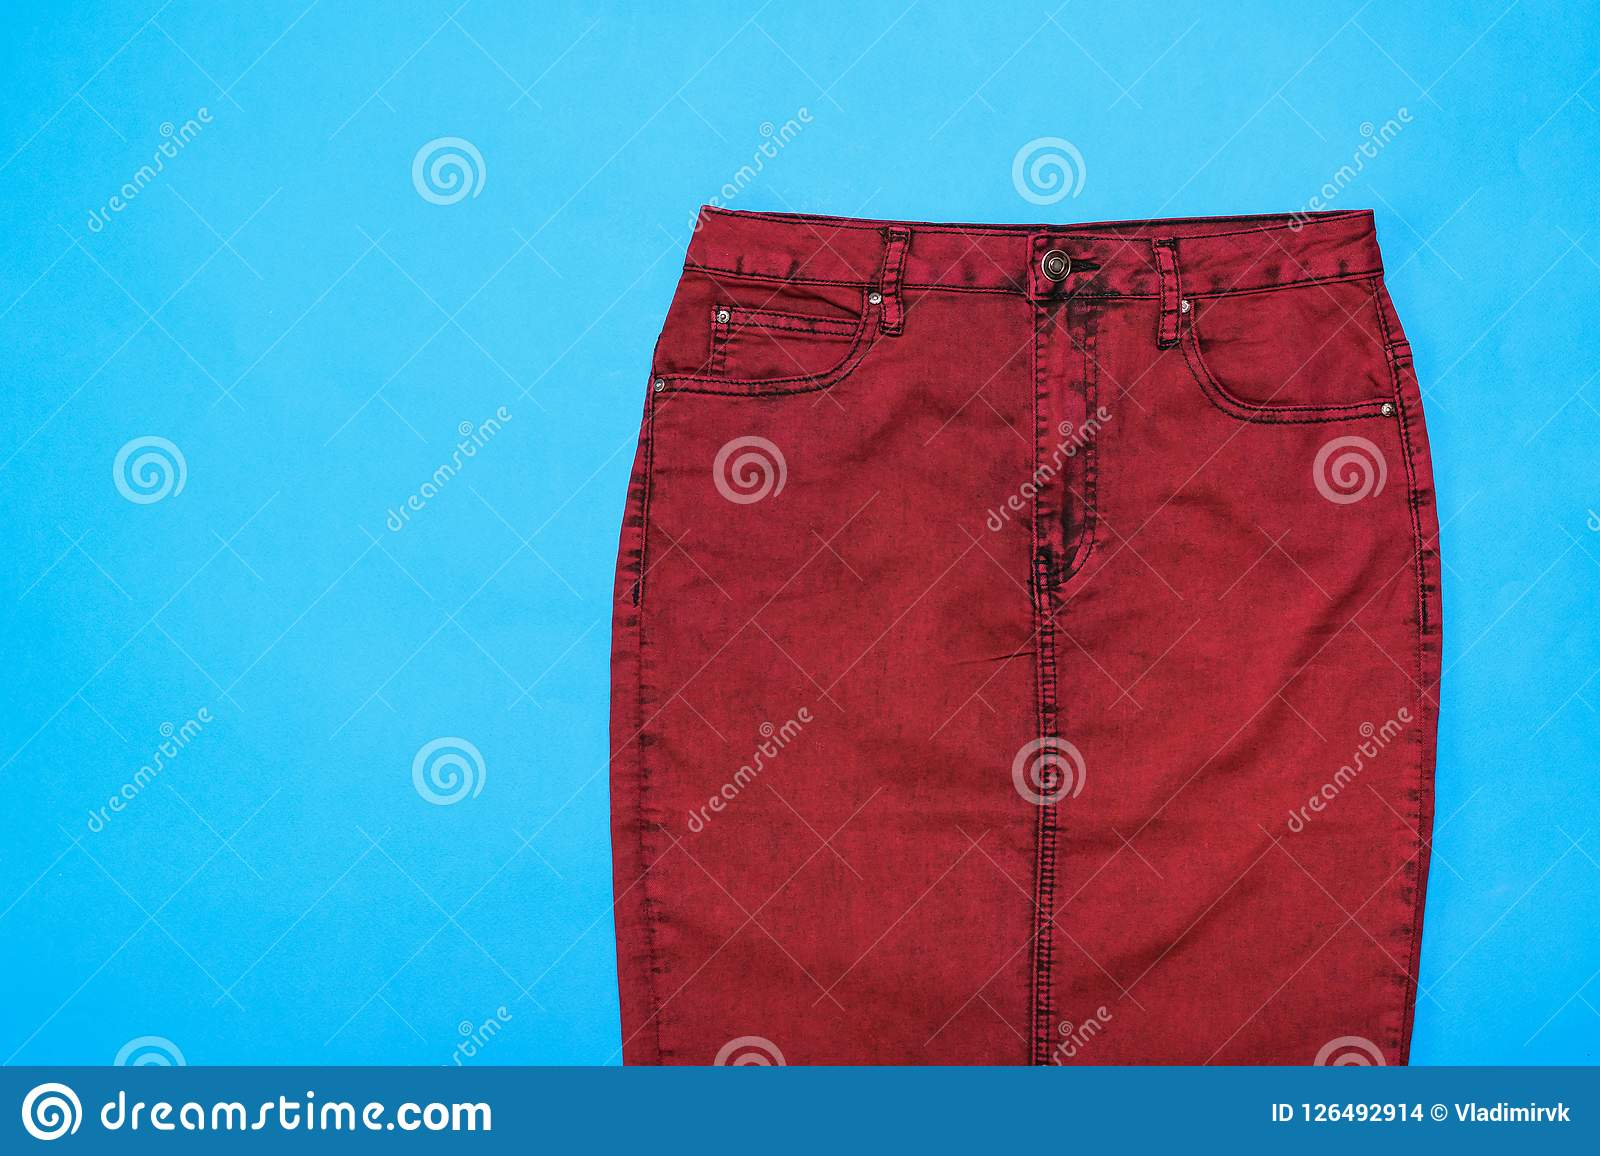 c4a8f4326 Burgundy denim skirt on blue background. Stylish women`s denim clothing.  Front view.